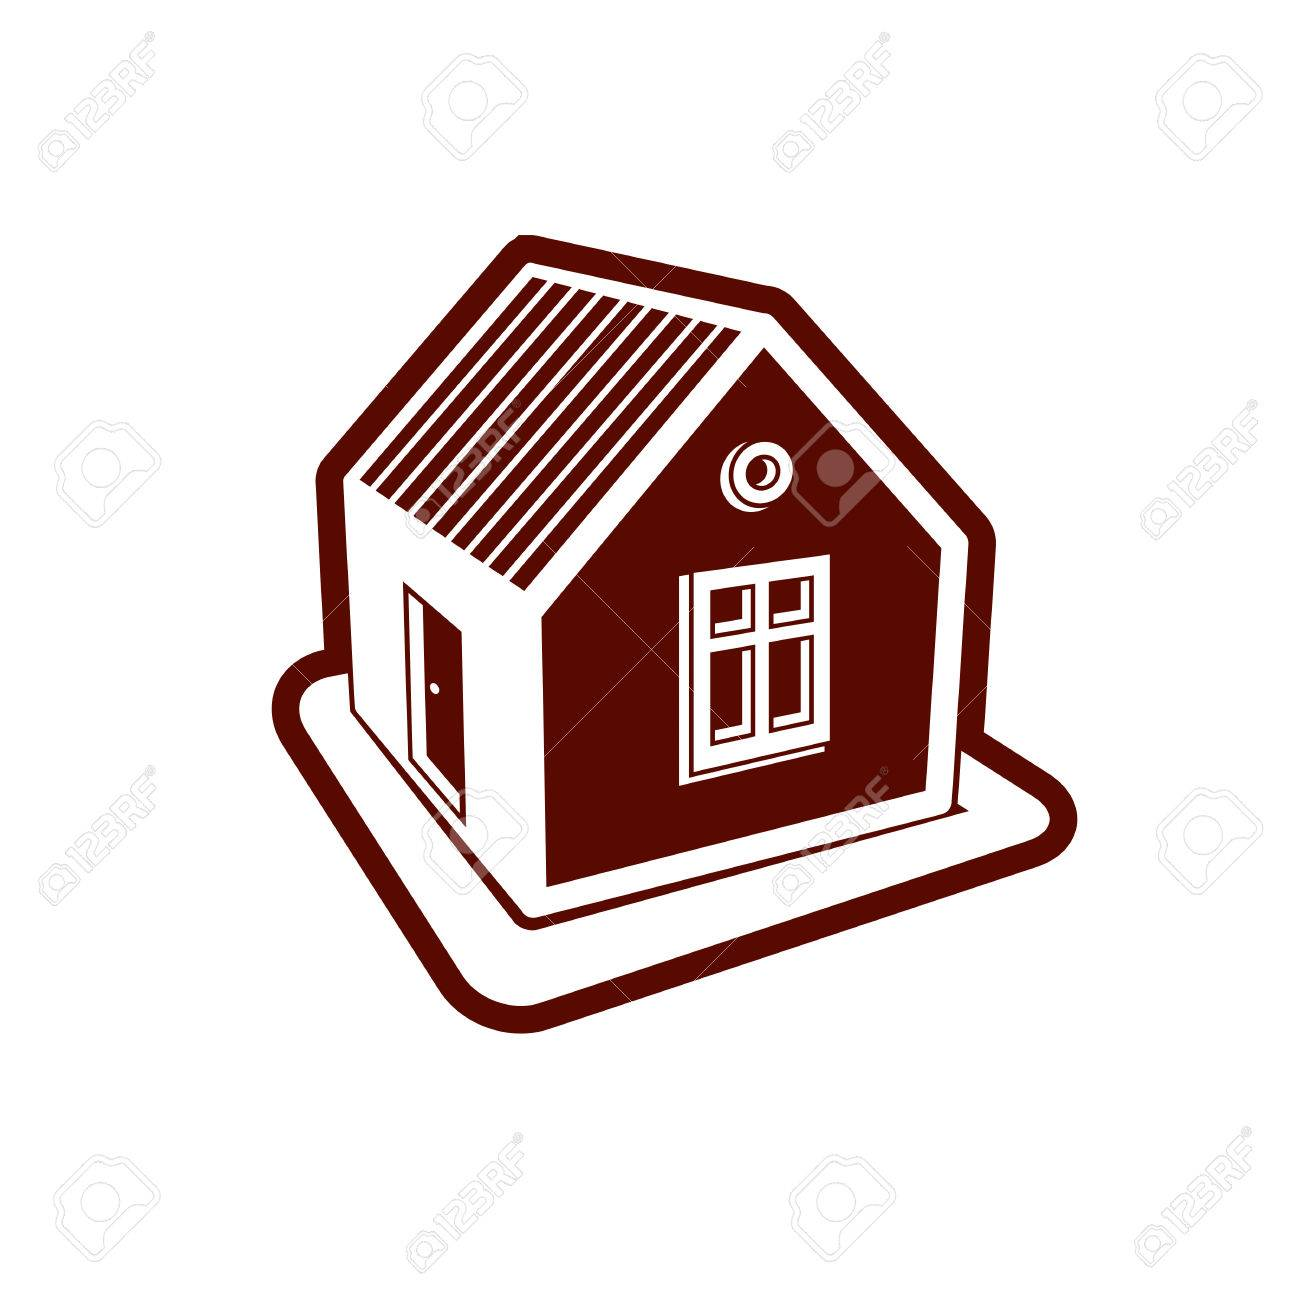 Simple Village Mansion Icon Vector Abstract House Country House Royalty Free Cliparts Vectors And Stock Illustration Image 51890355 Use this opportunity to see some imageries for your best ideas to choose, select one or more of these artistic galleries. simple village mansion icon vector abstract house country house